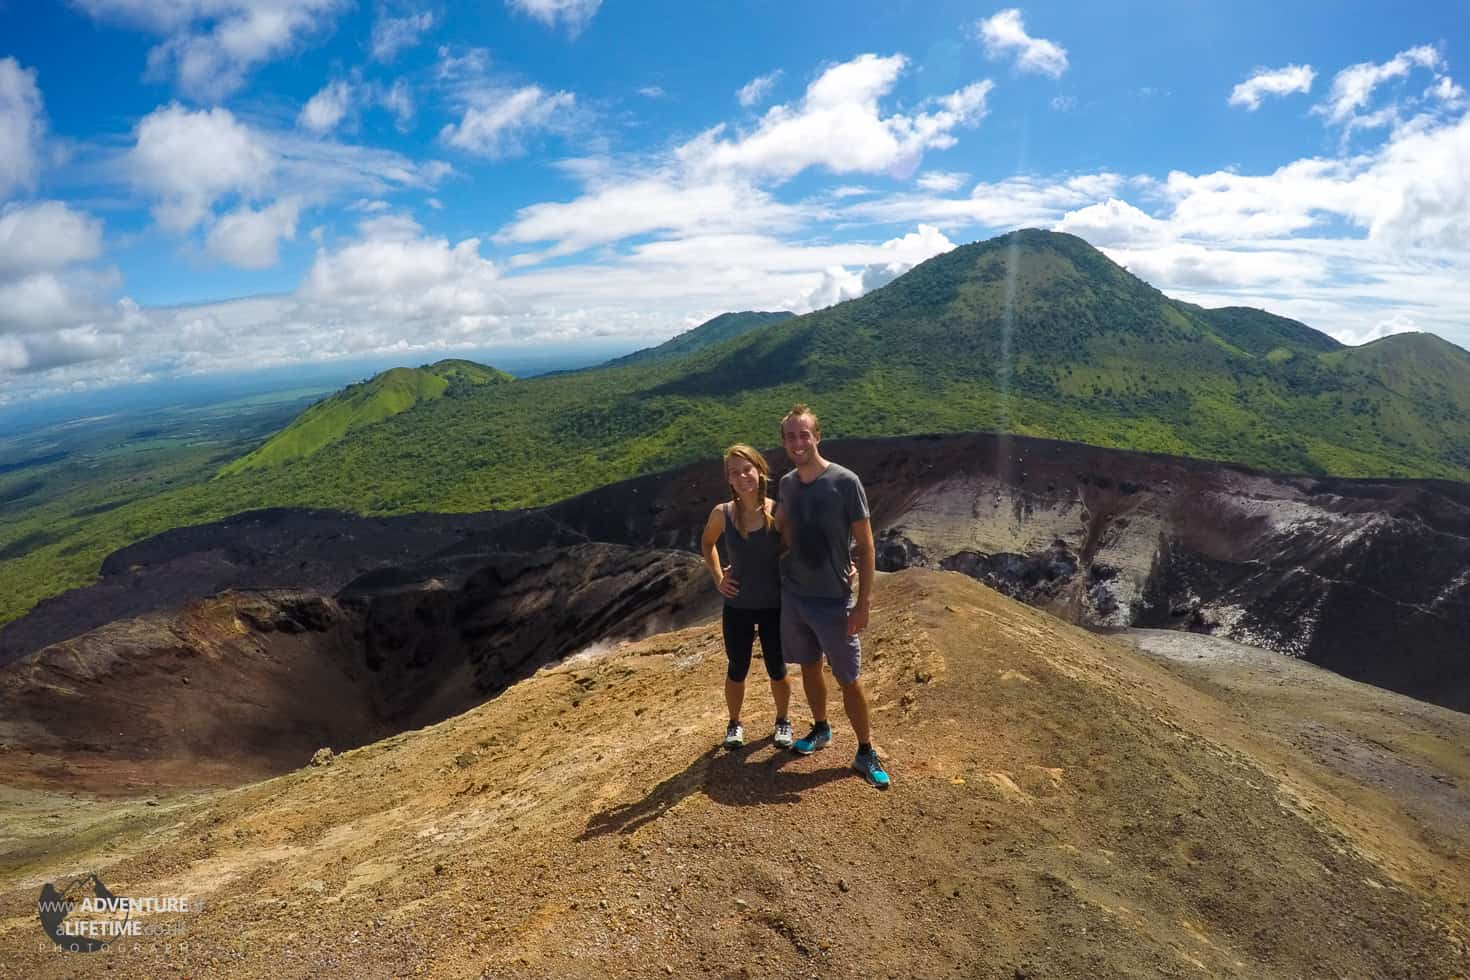 Looking over the crater, Cerro Negro